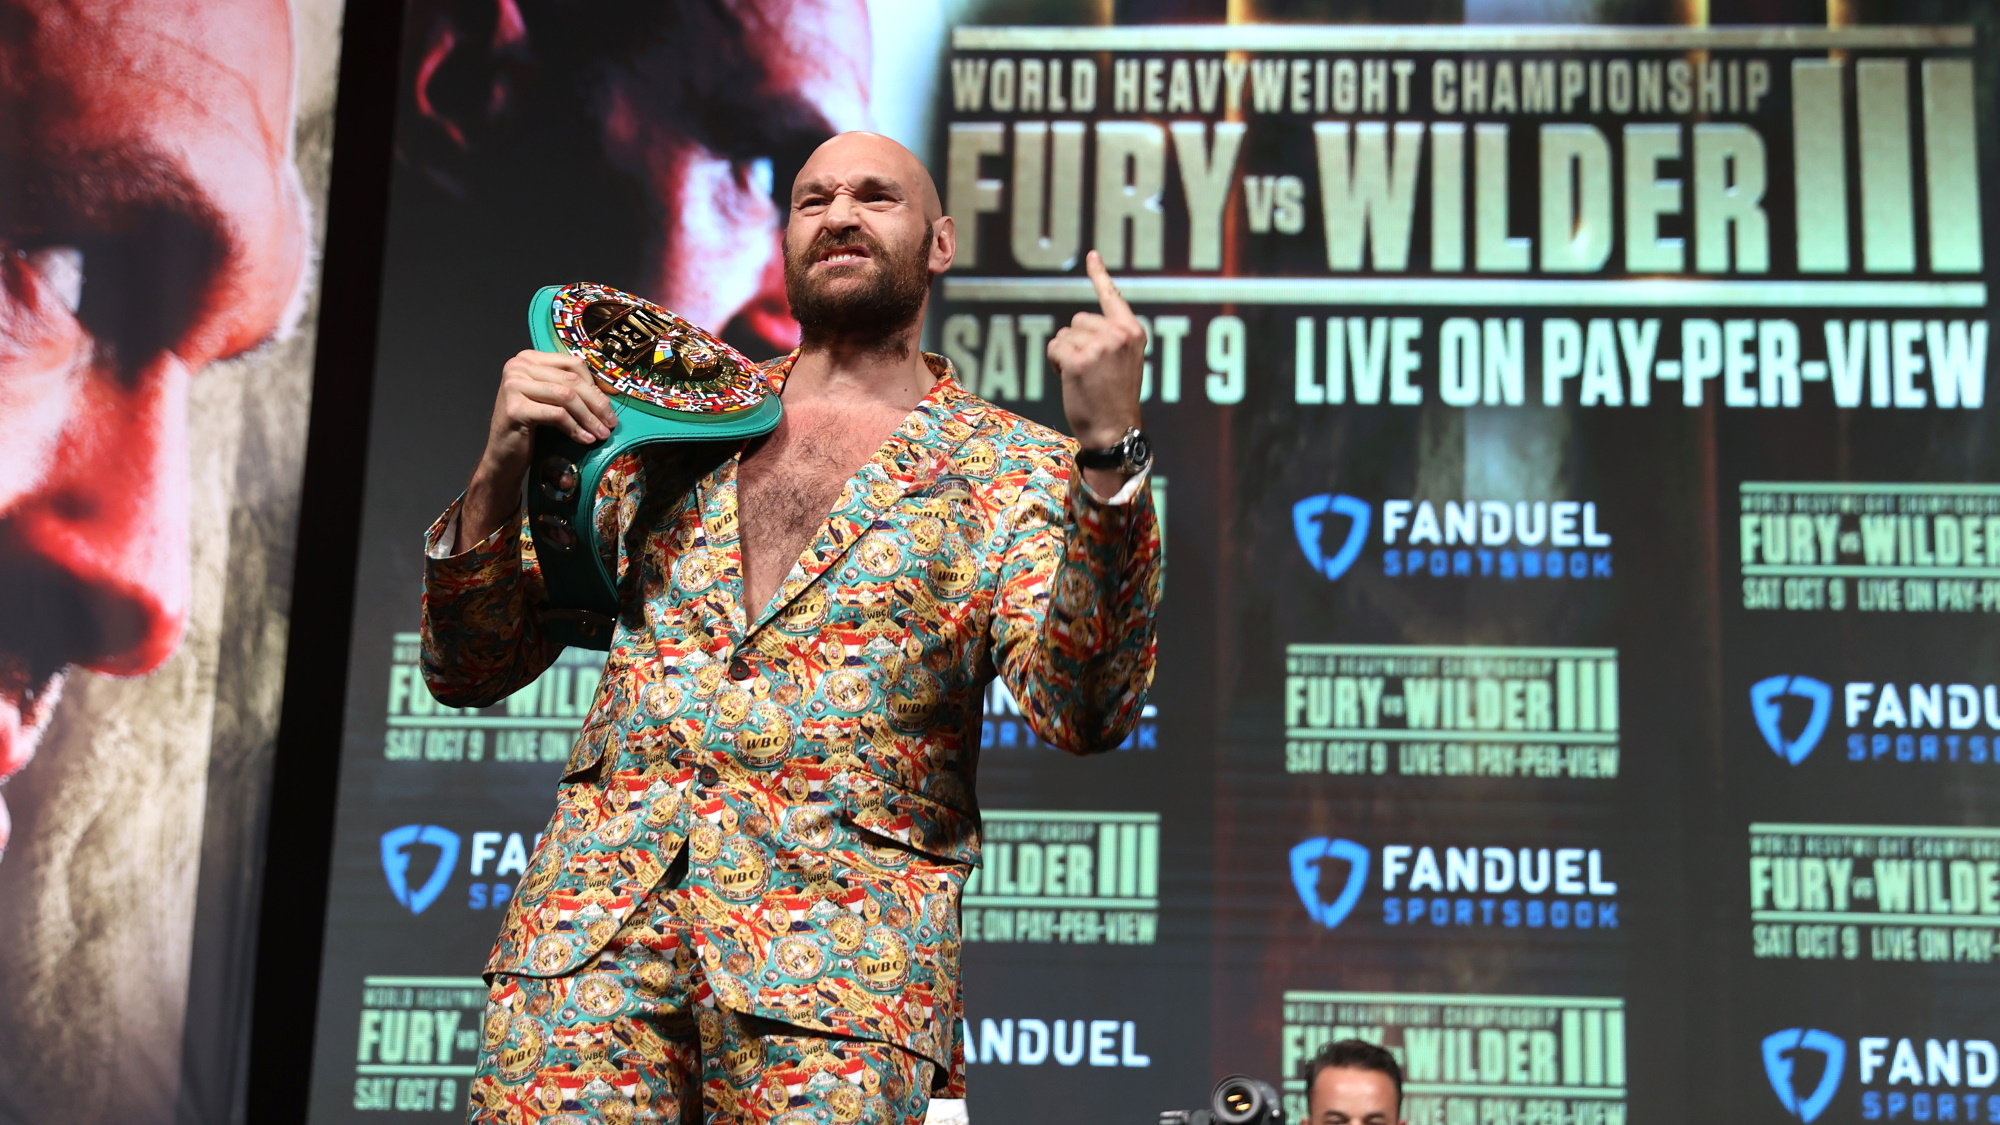 Tyson Fury at a press conference prior to his 2021 fight with Deontay Wilder